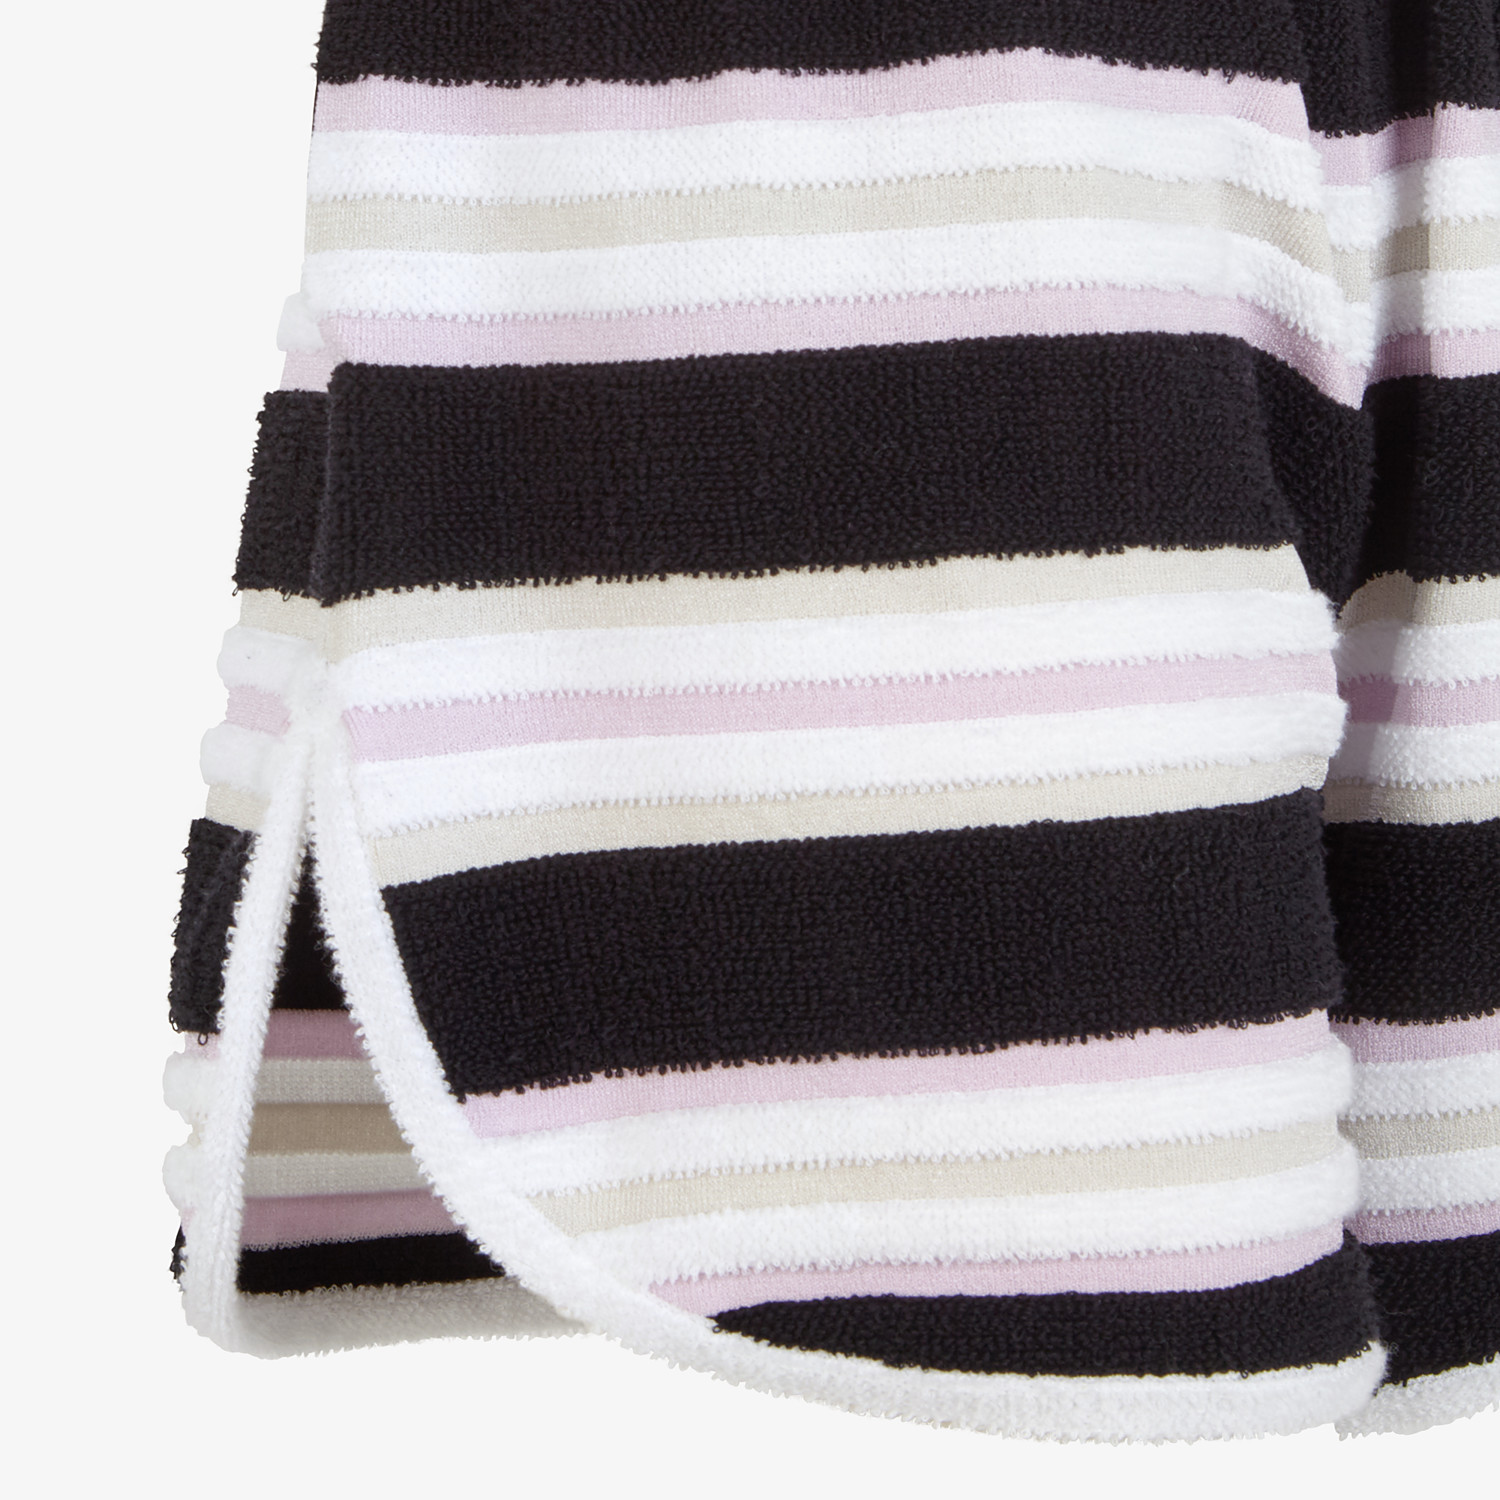 FENDI SHORTS - Multicolour cotton shorts - view 3 detail